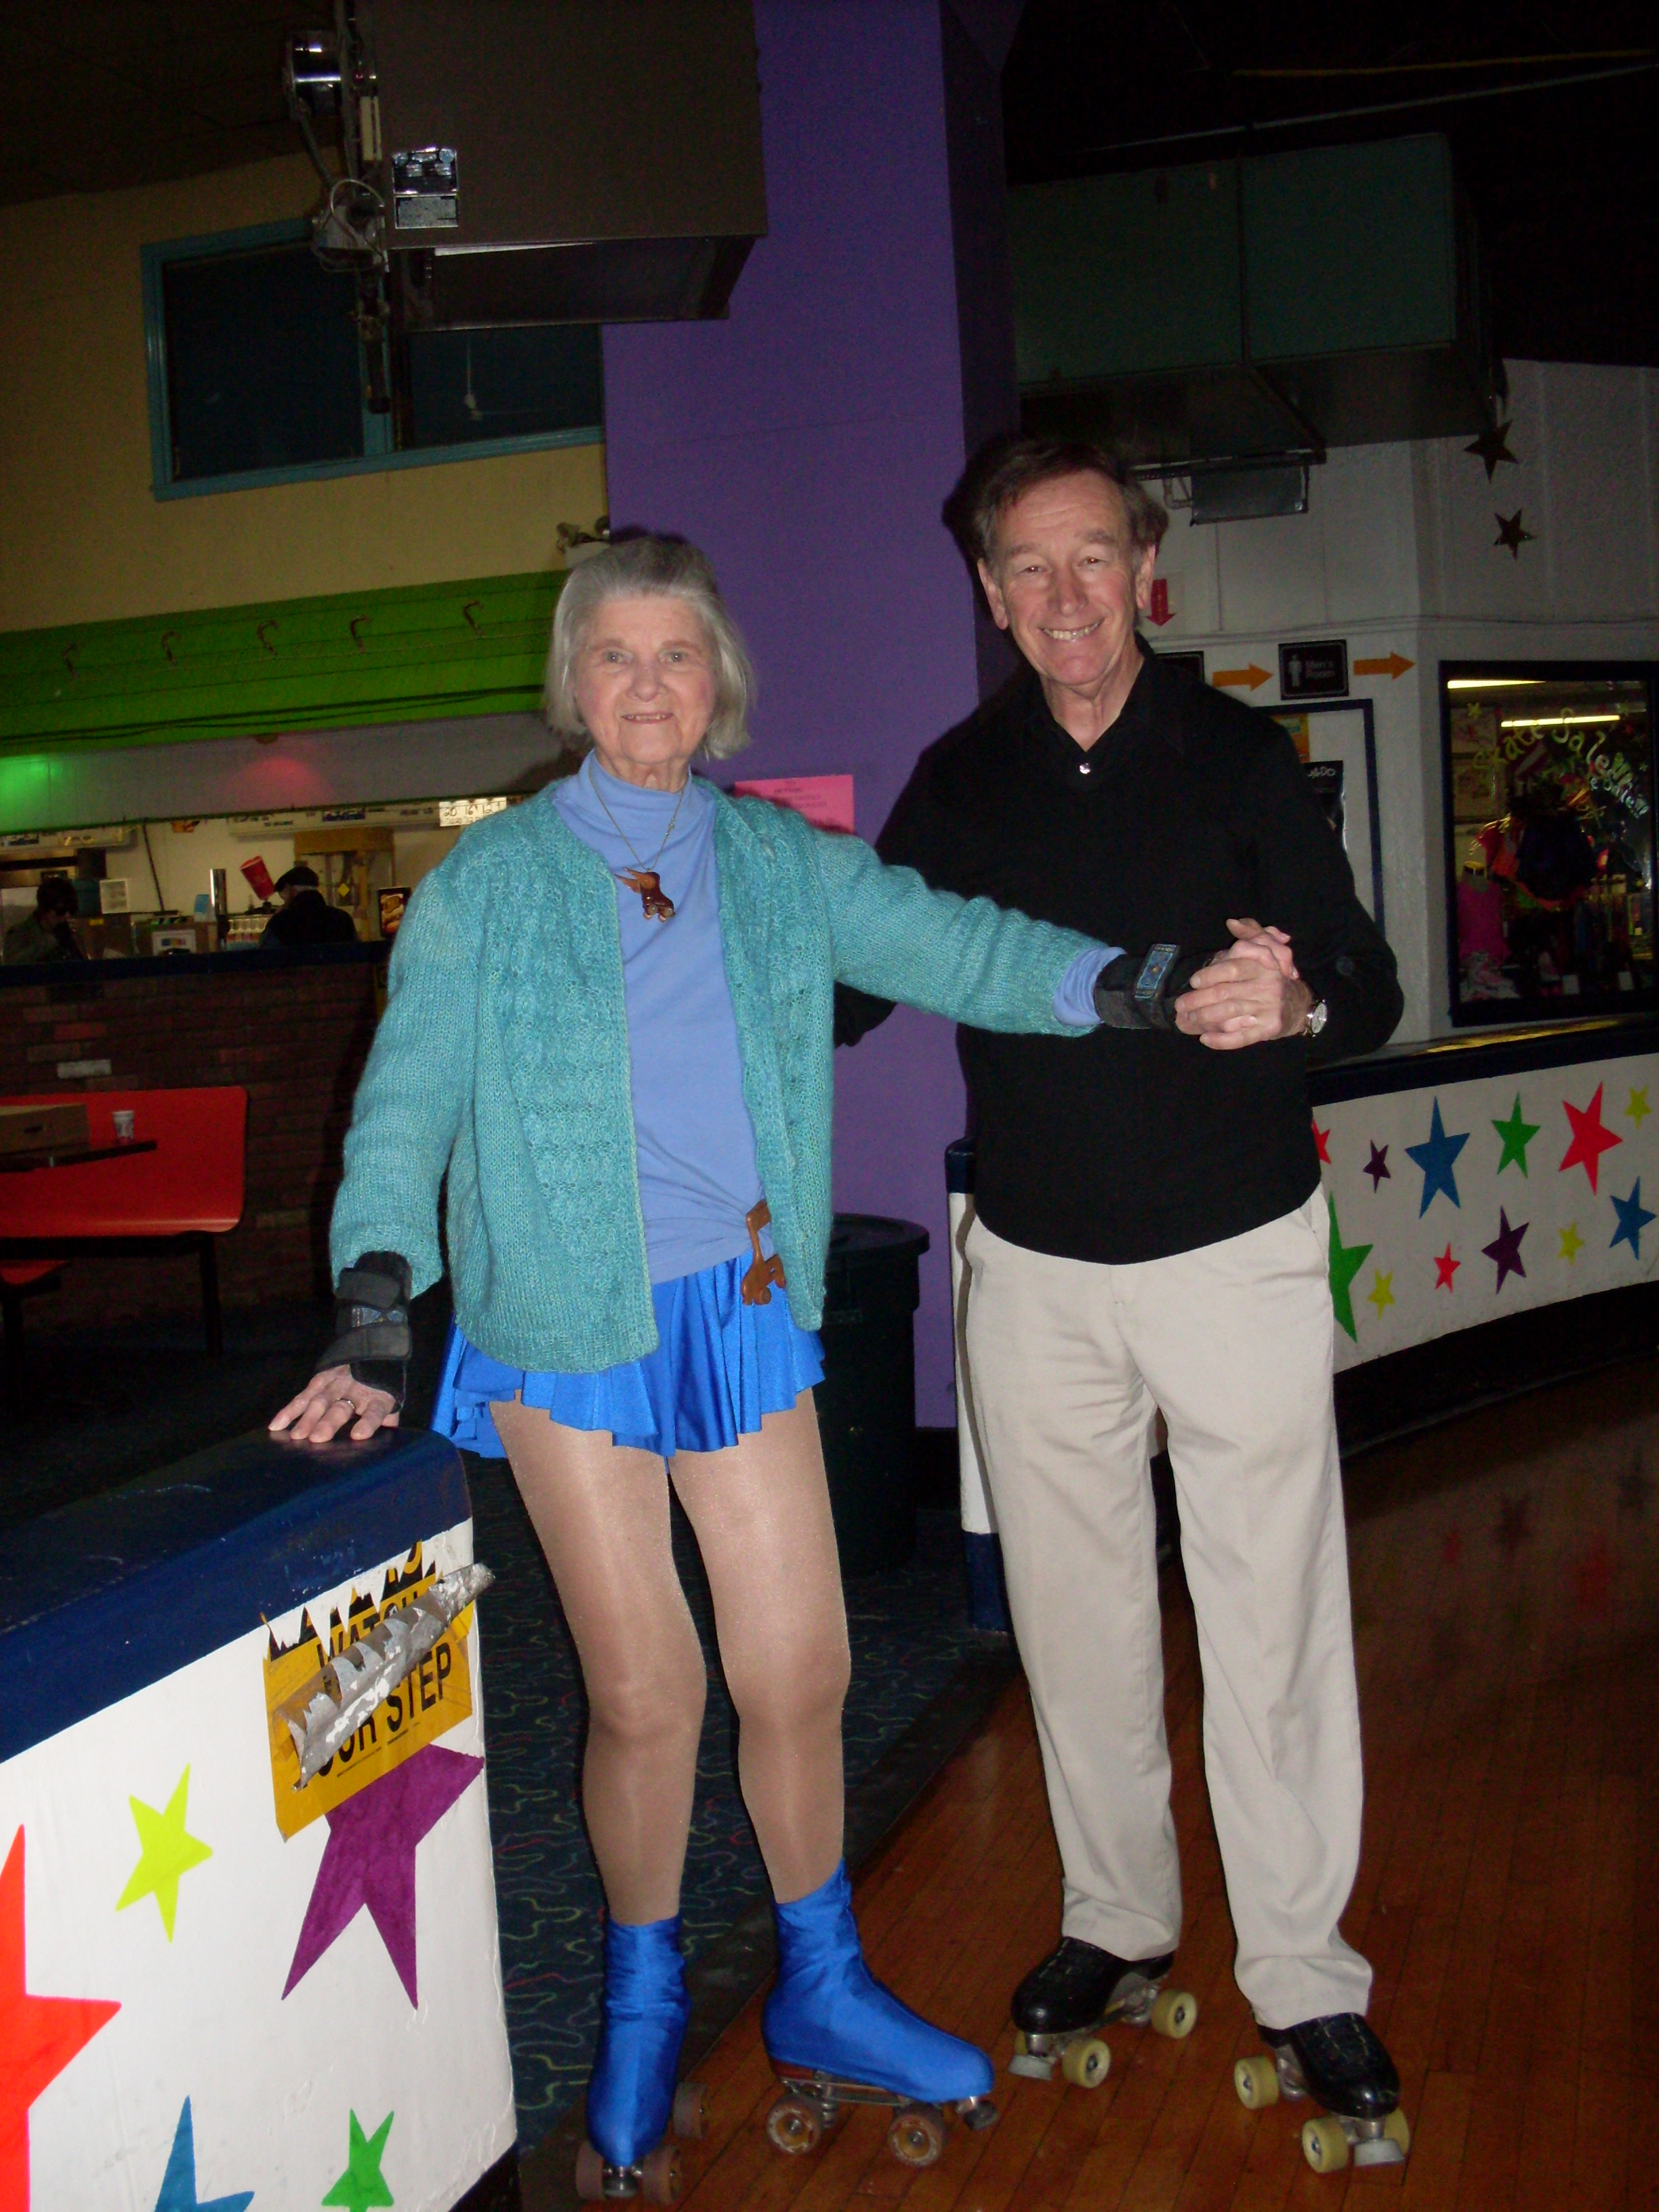 Usa roller skating rink queens - Carrie Calendriello Age 92 And Chester Fried Age 66 Are Inspirations On Roller Skates